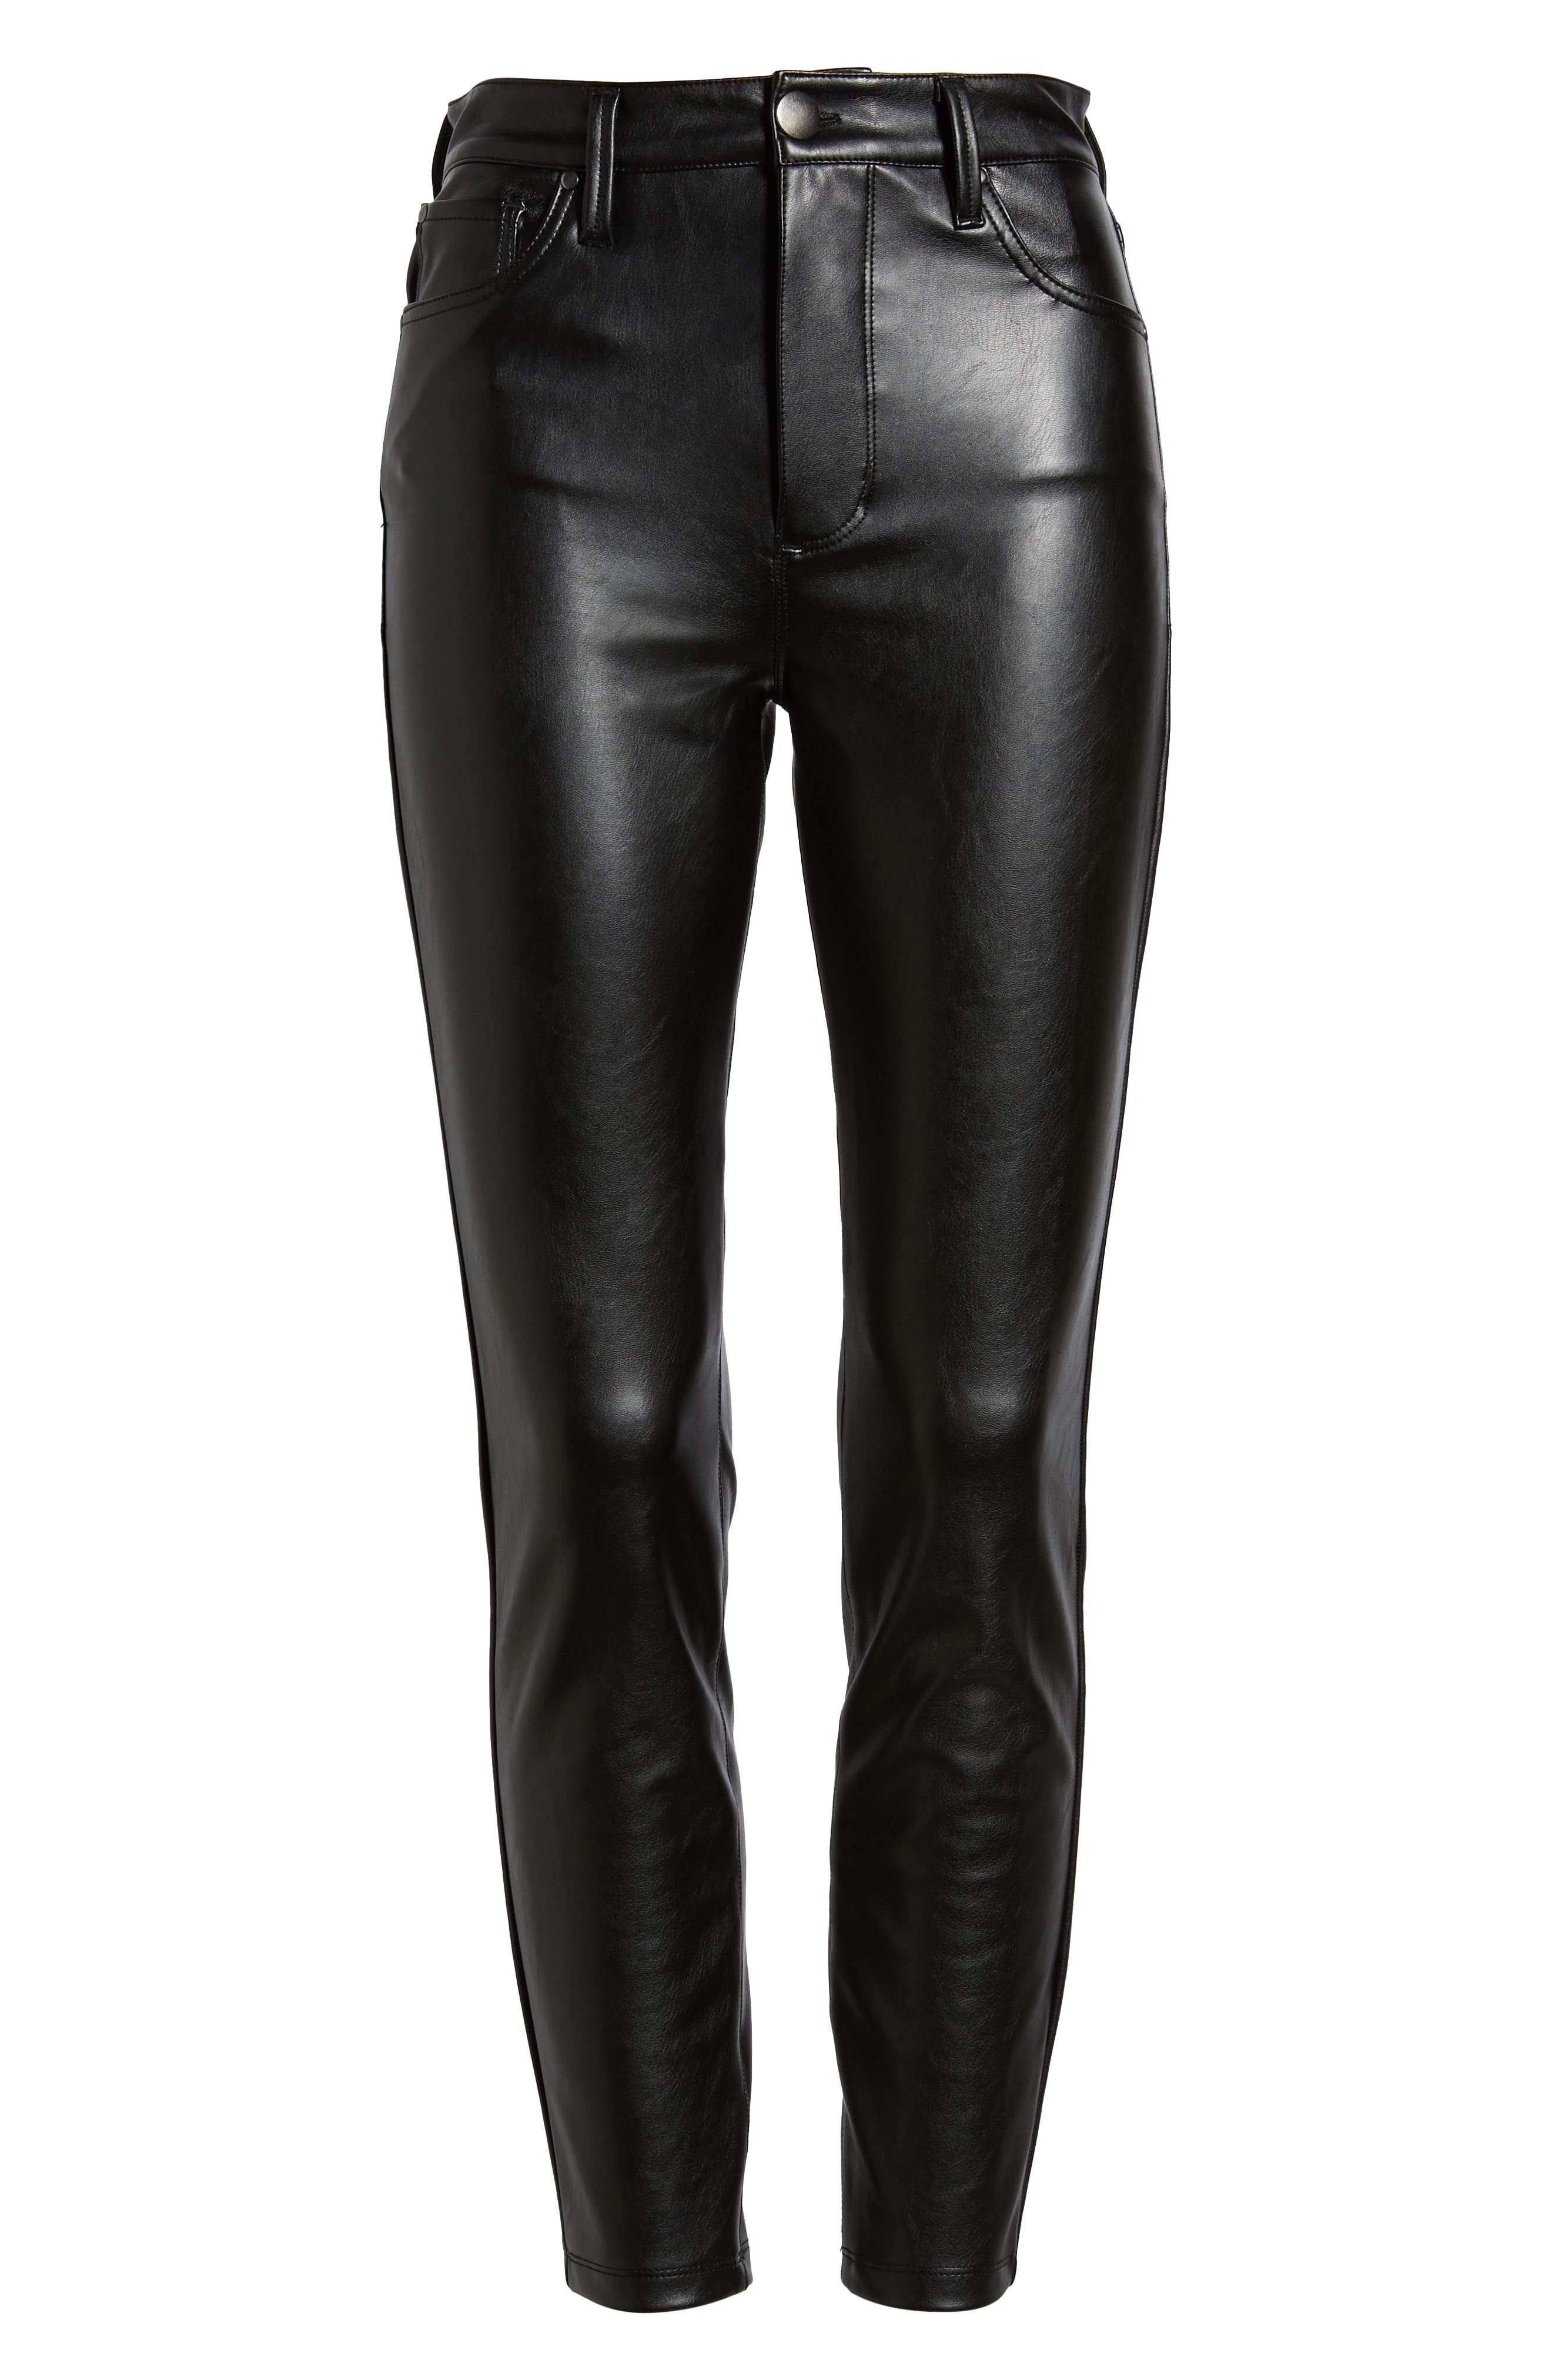 TINSEL, High Waist Faux Leather Skinny Pants, Alternate thumbnail 6, color, 001